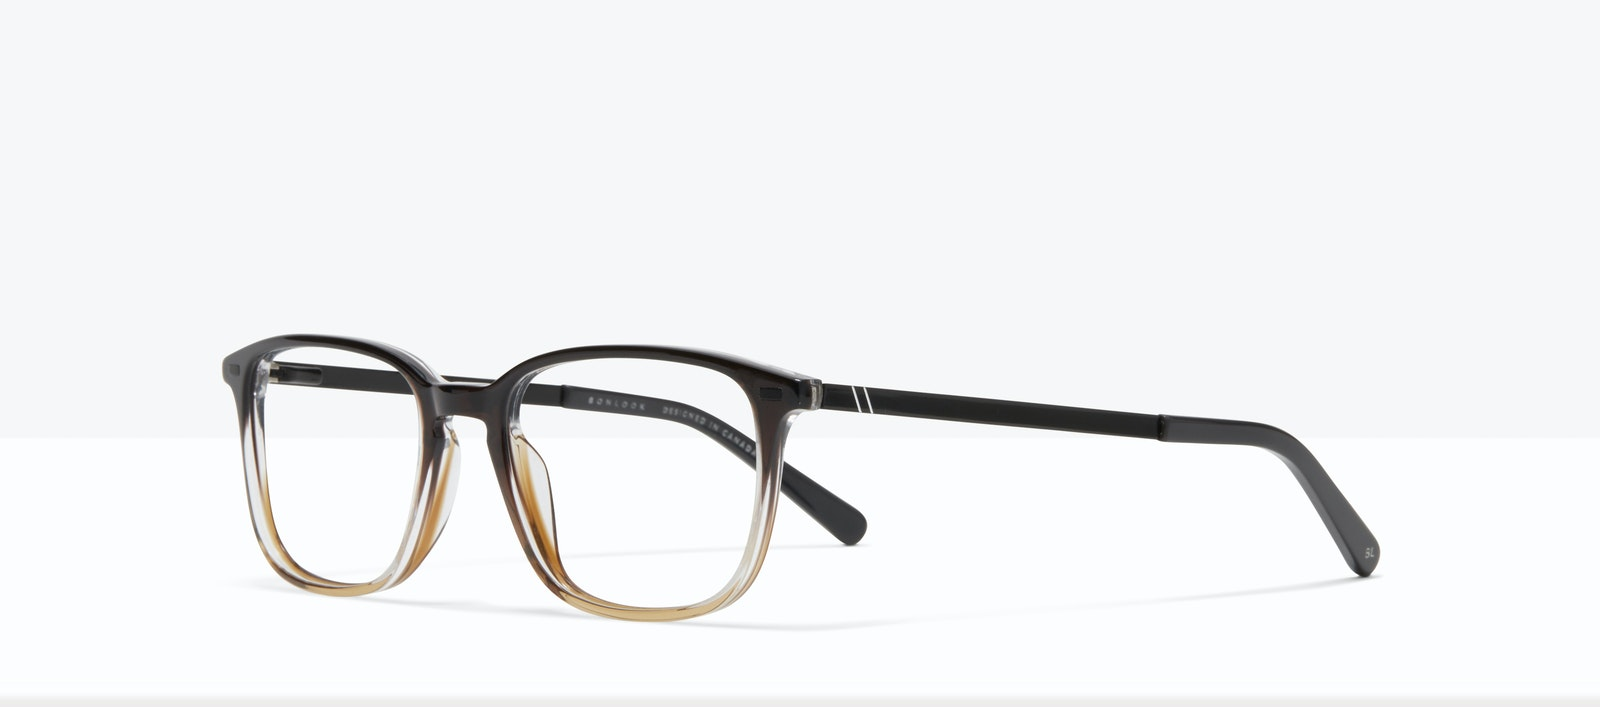 Affordable Fashion Glasses Rectangle Eyeglasses Men Sharp L Mocha Tilt